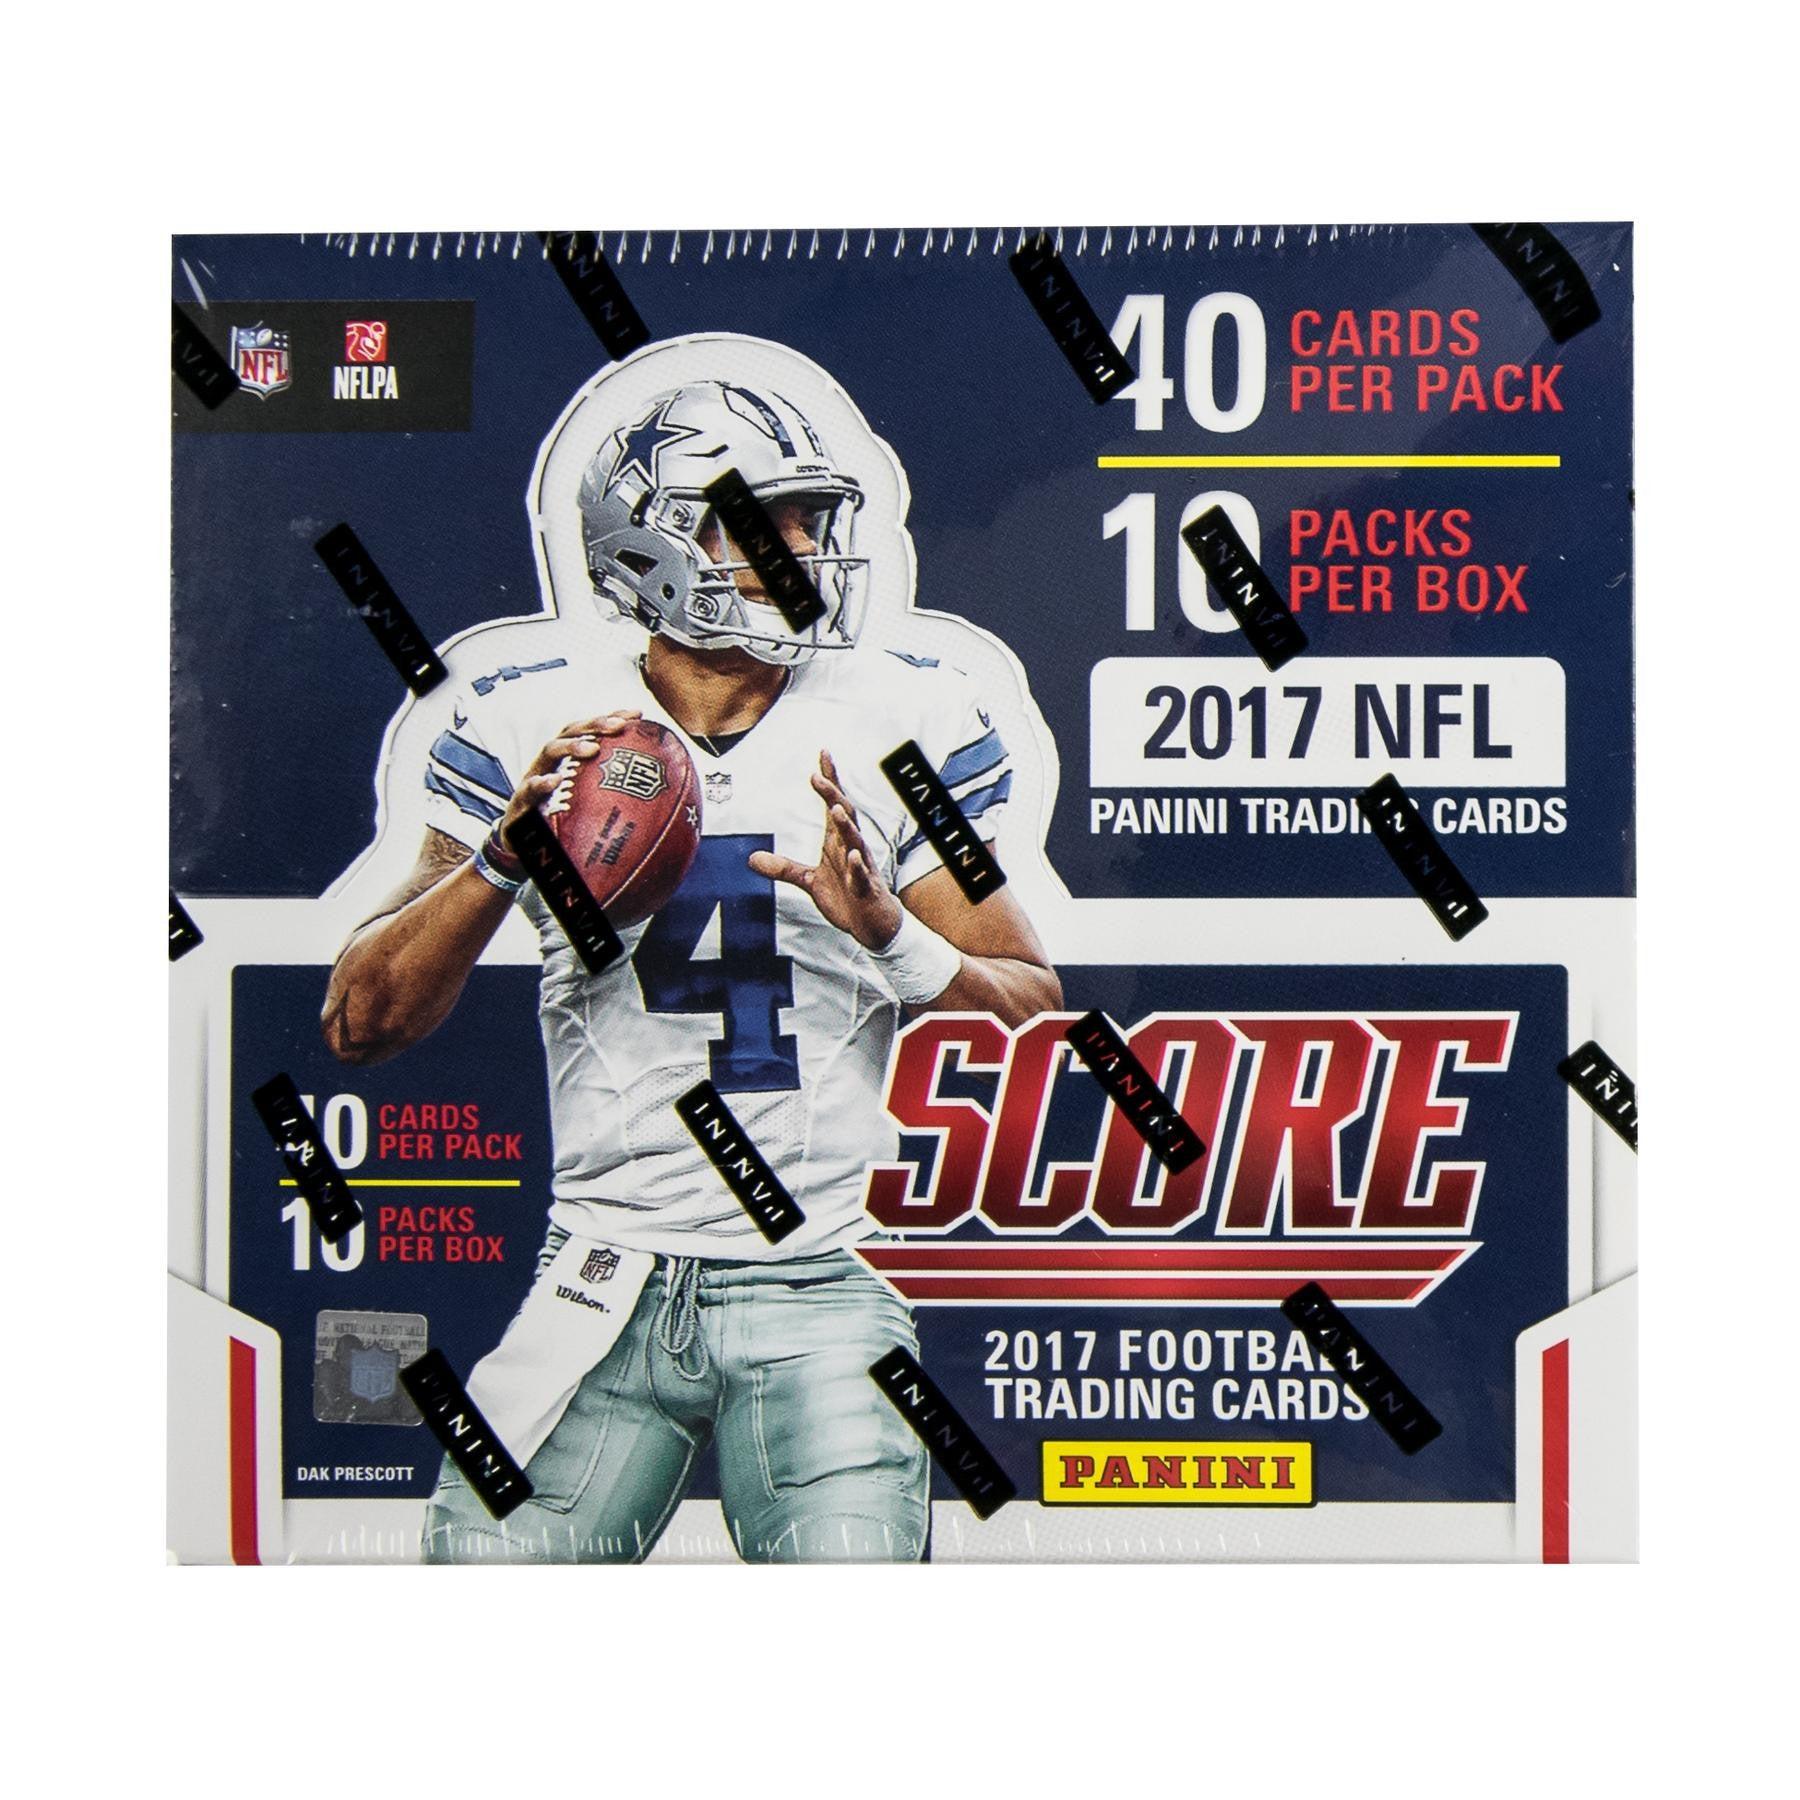 2017 Panini Score Football Hobby Box  NFL Trading Cards  Melb CBD – Cherry Collectables